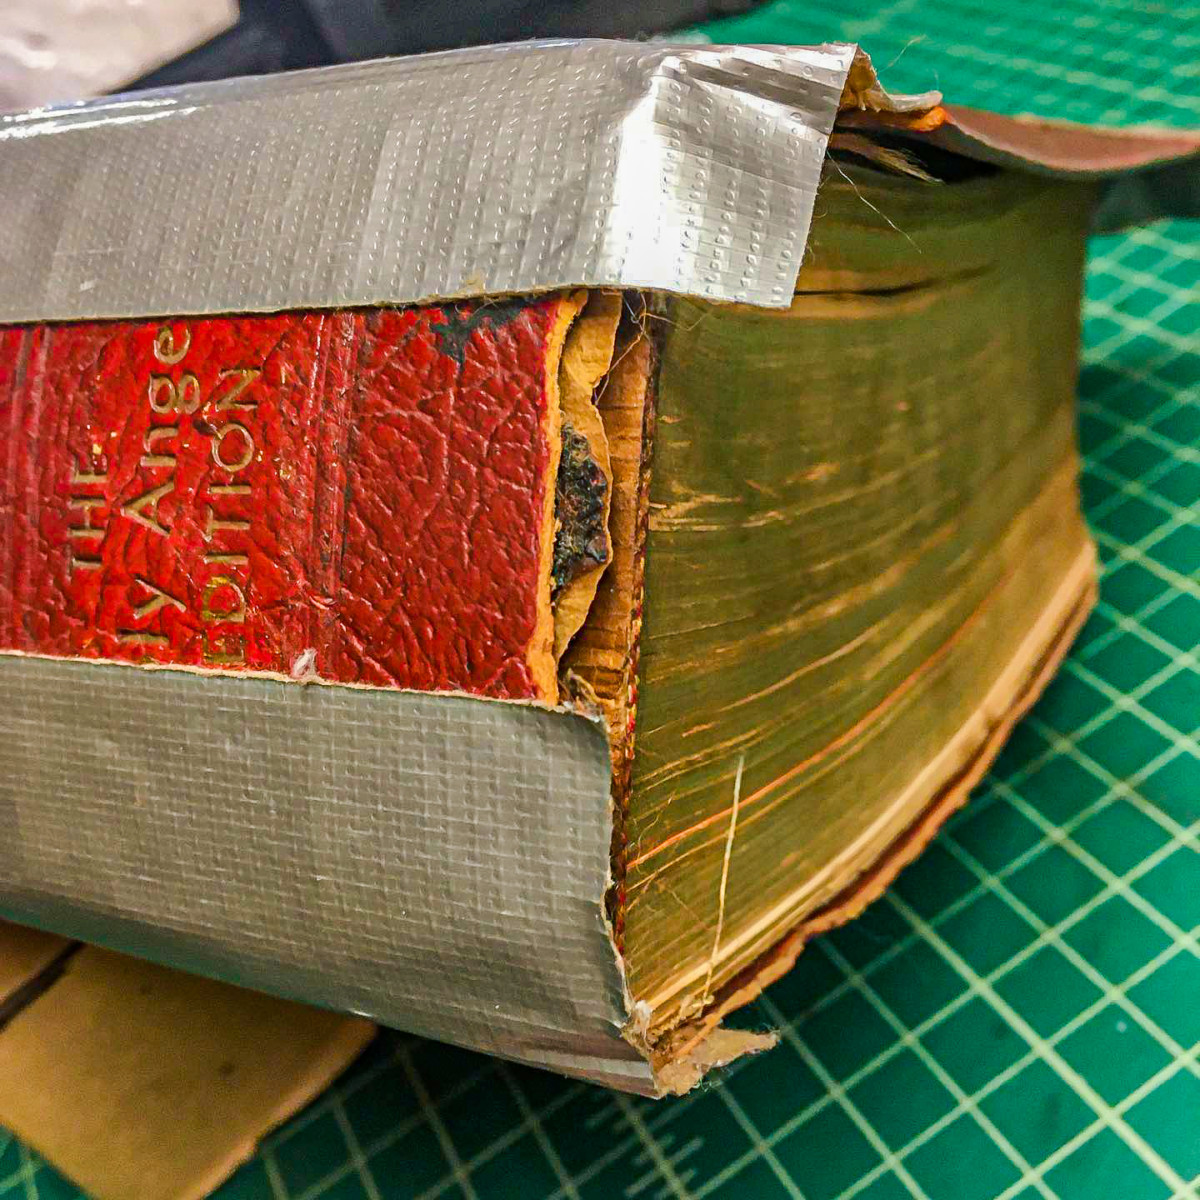 How Not To Repair Your Bible With Duct Tape 5